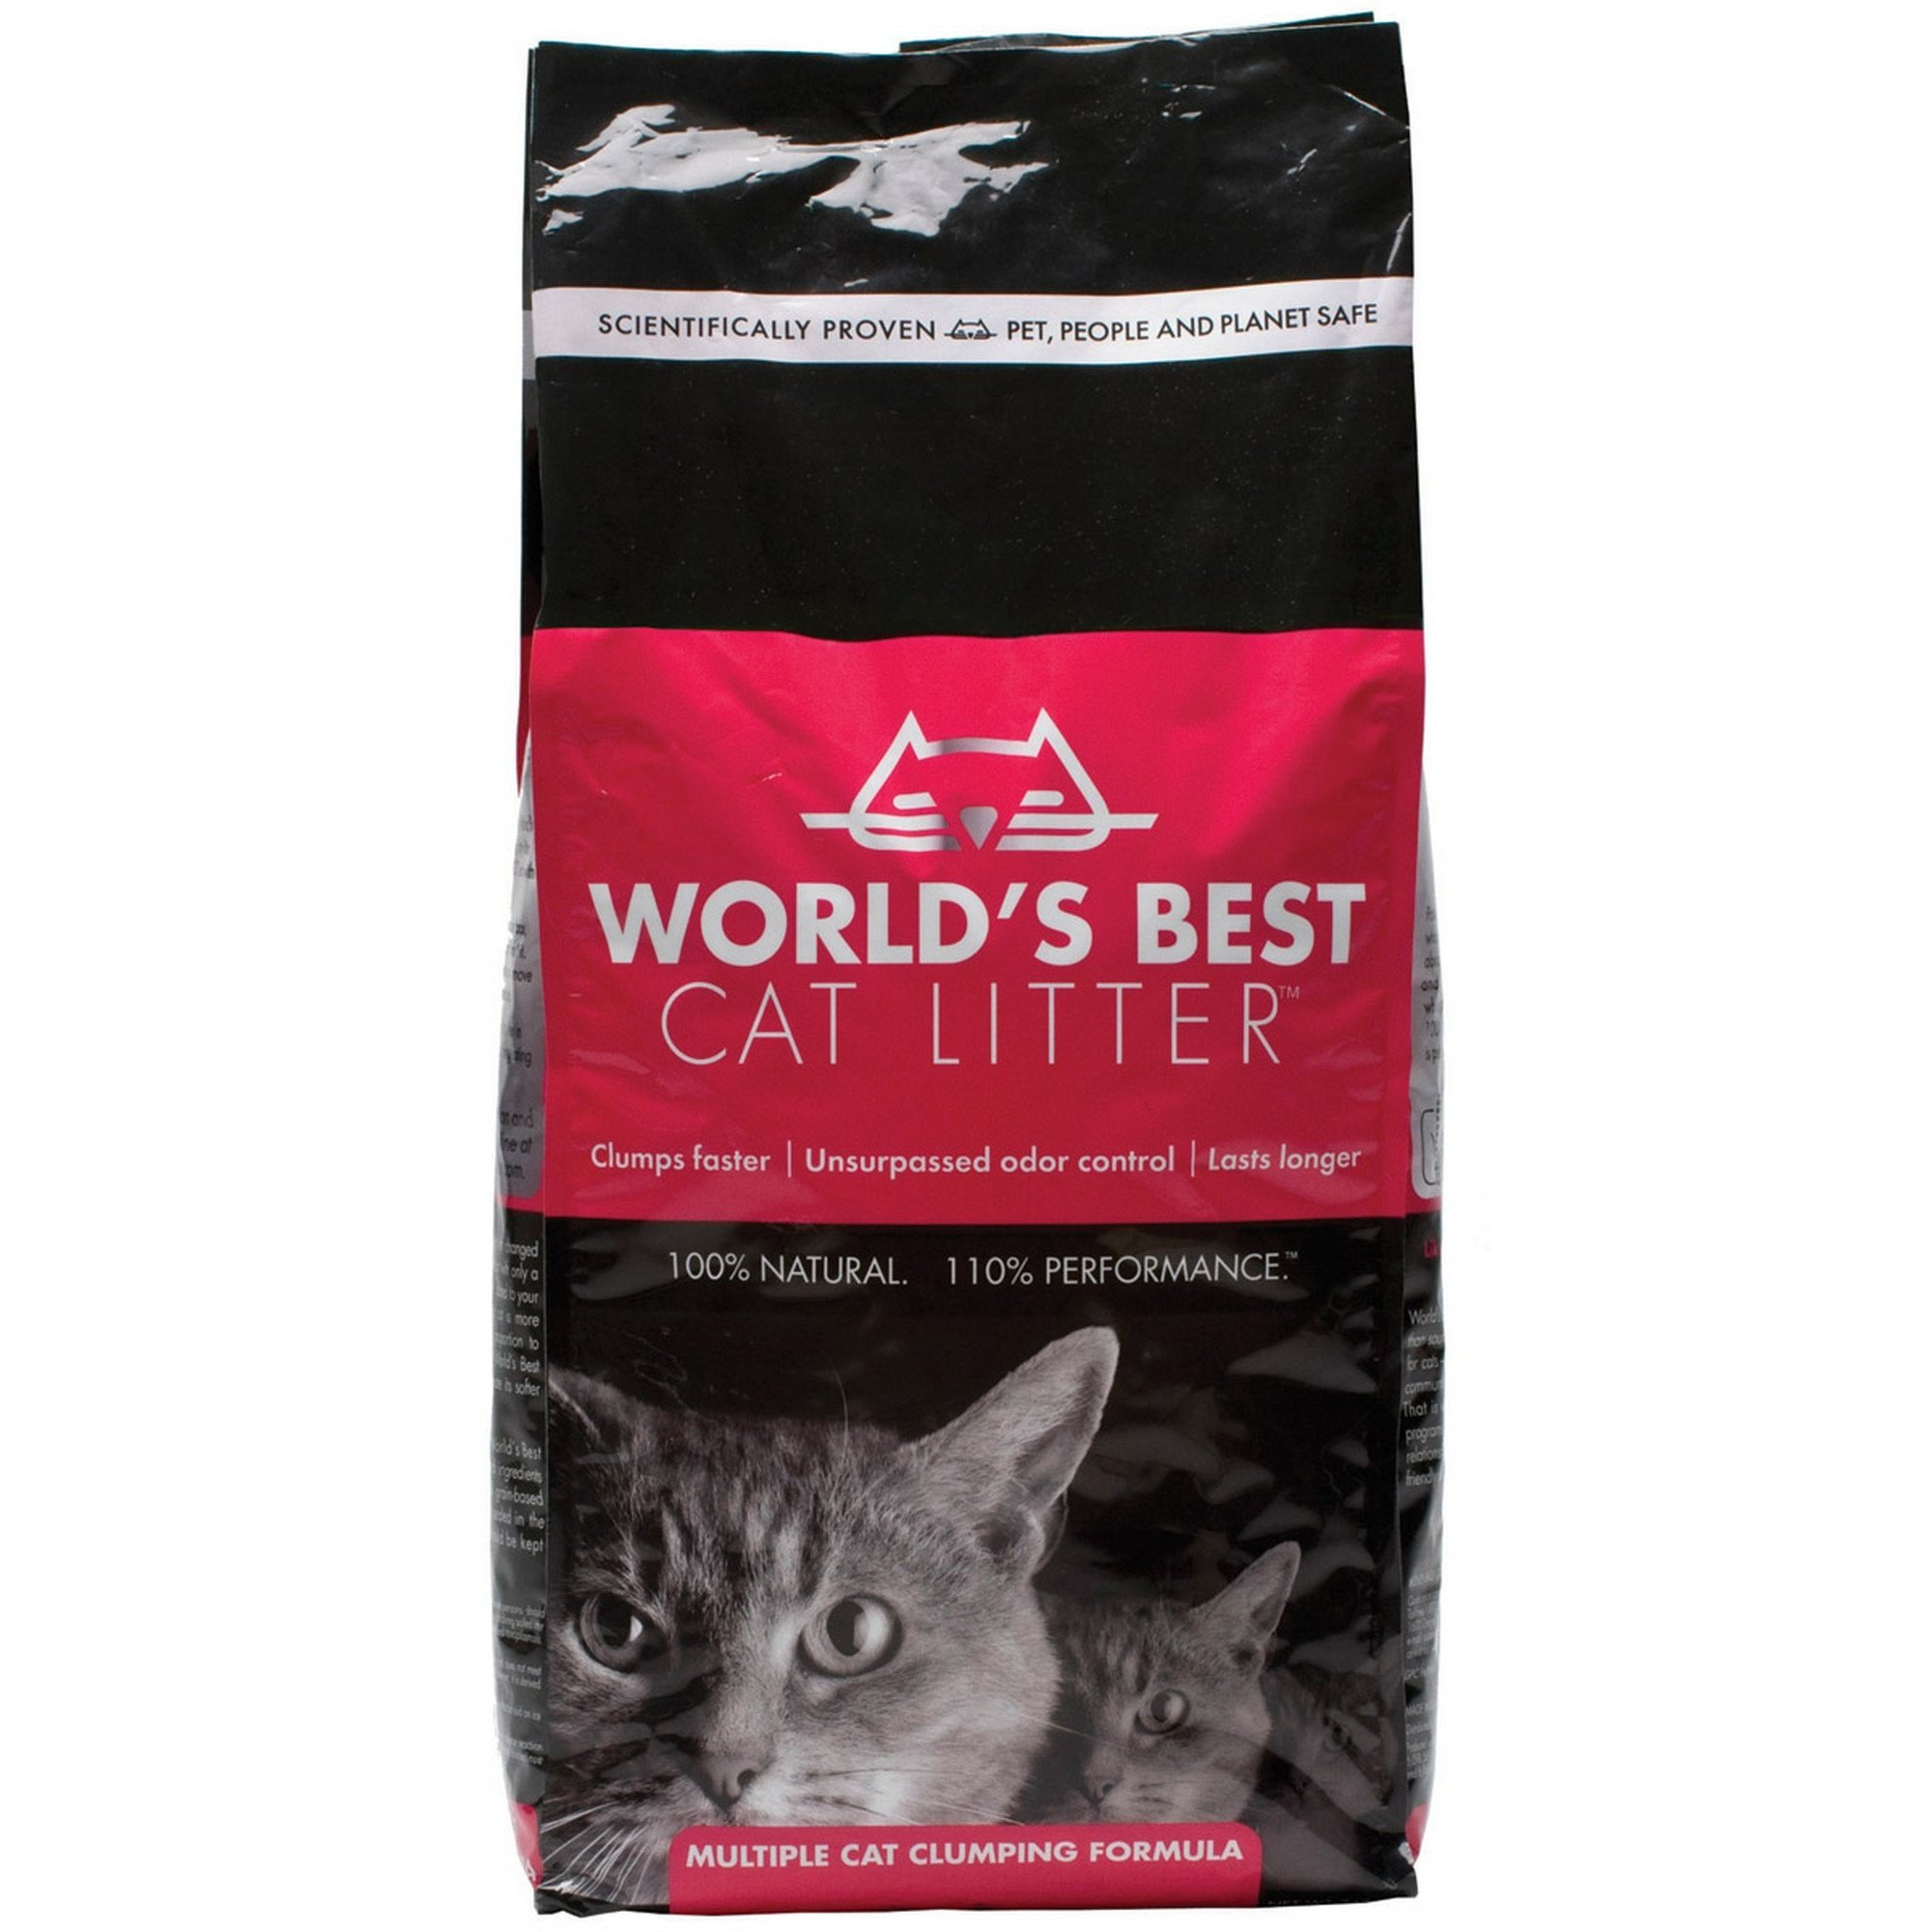 MPM Products Worlds Best Cat Litter Multiple Cat Clumping Formula (14lbs) (Multicolored)